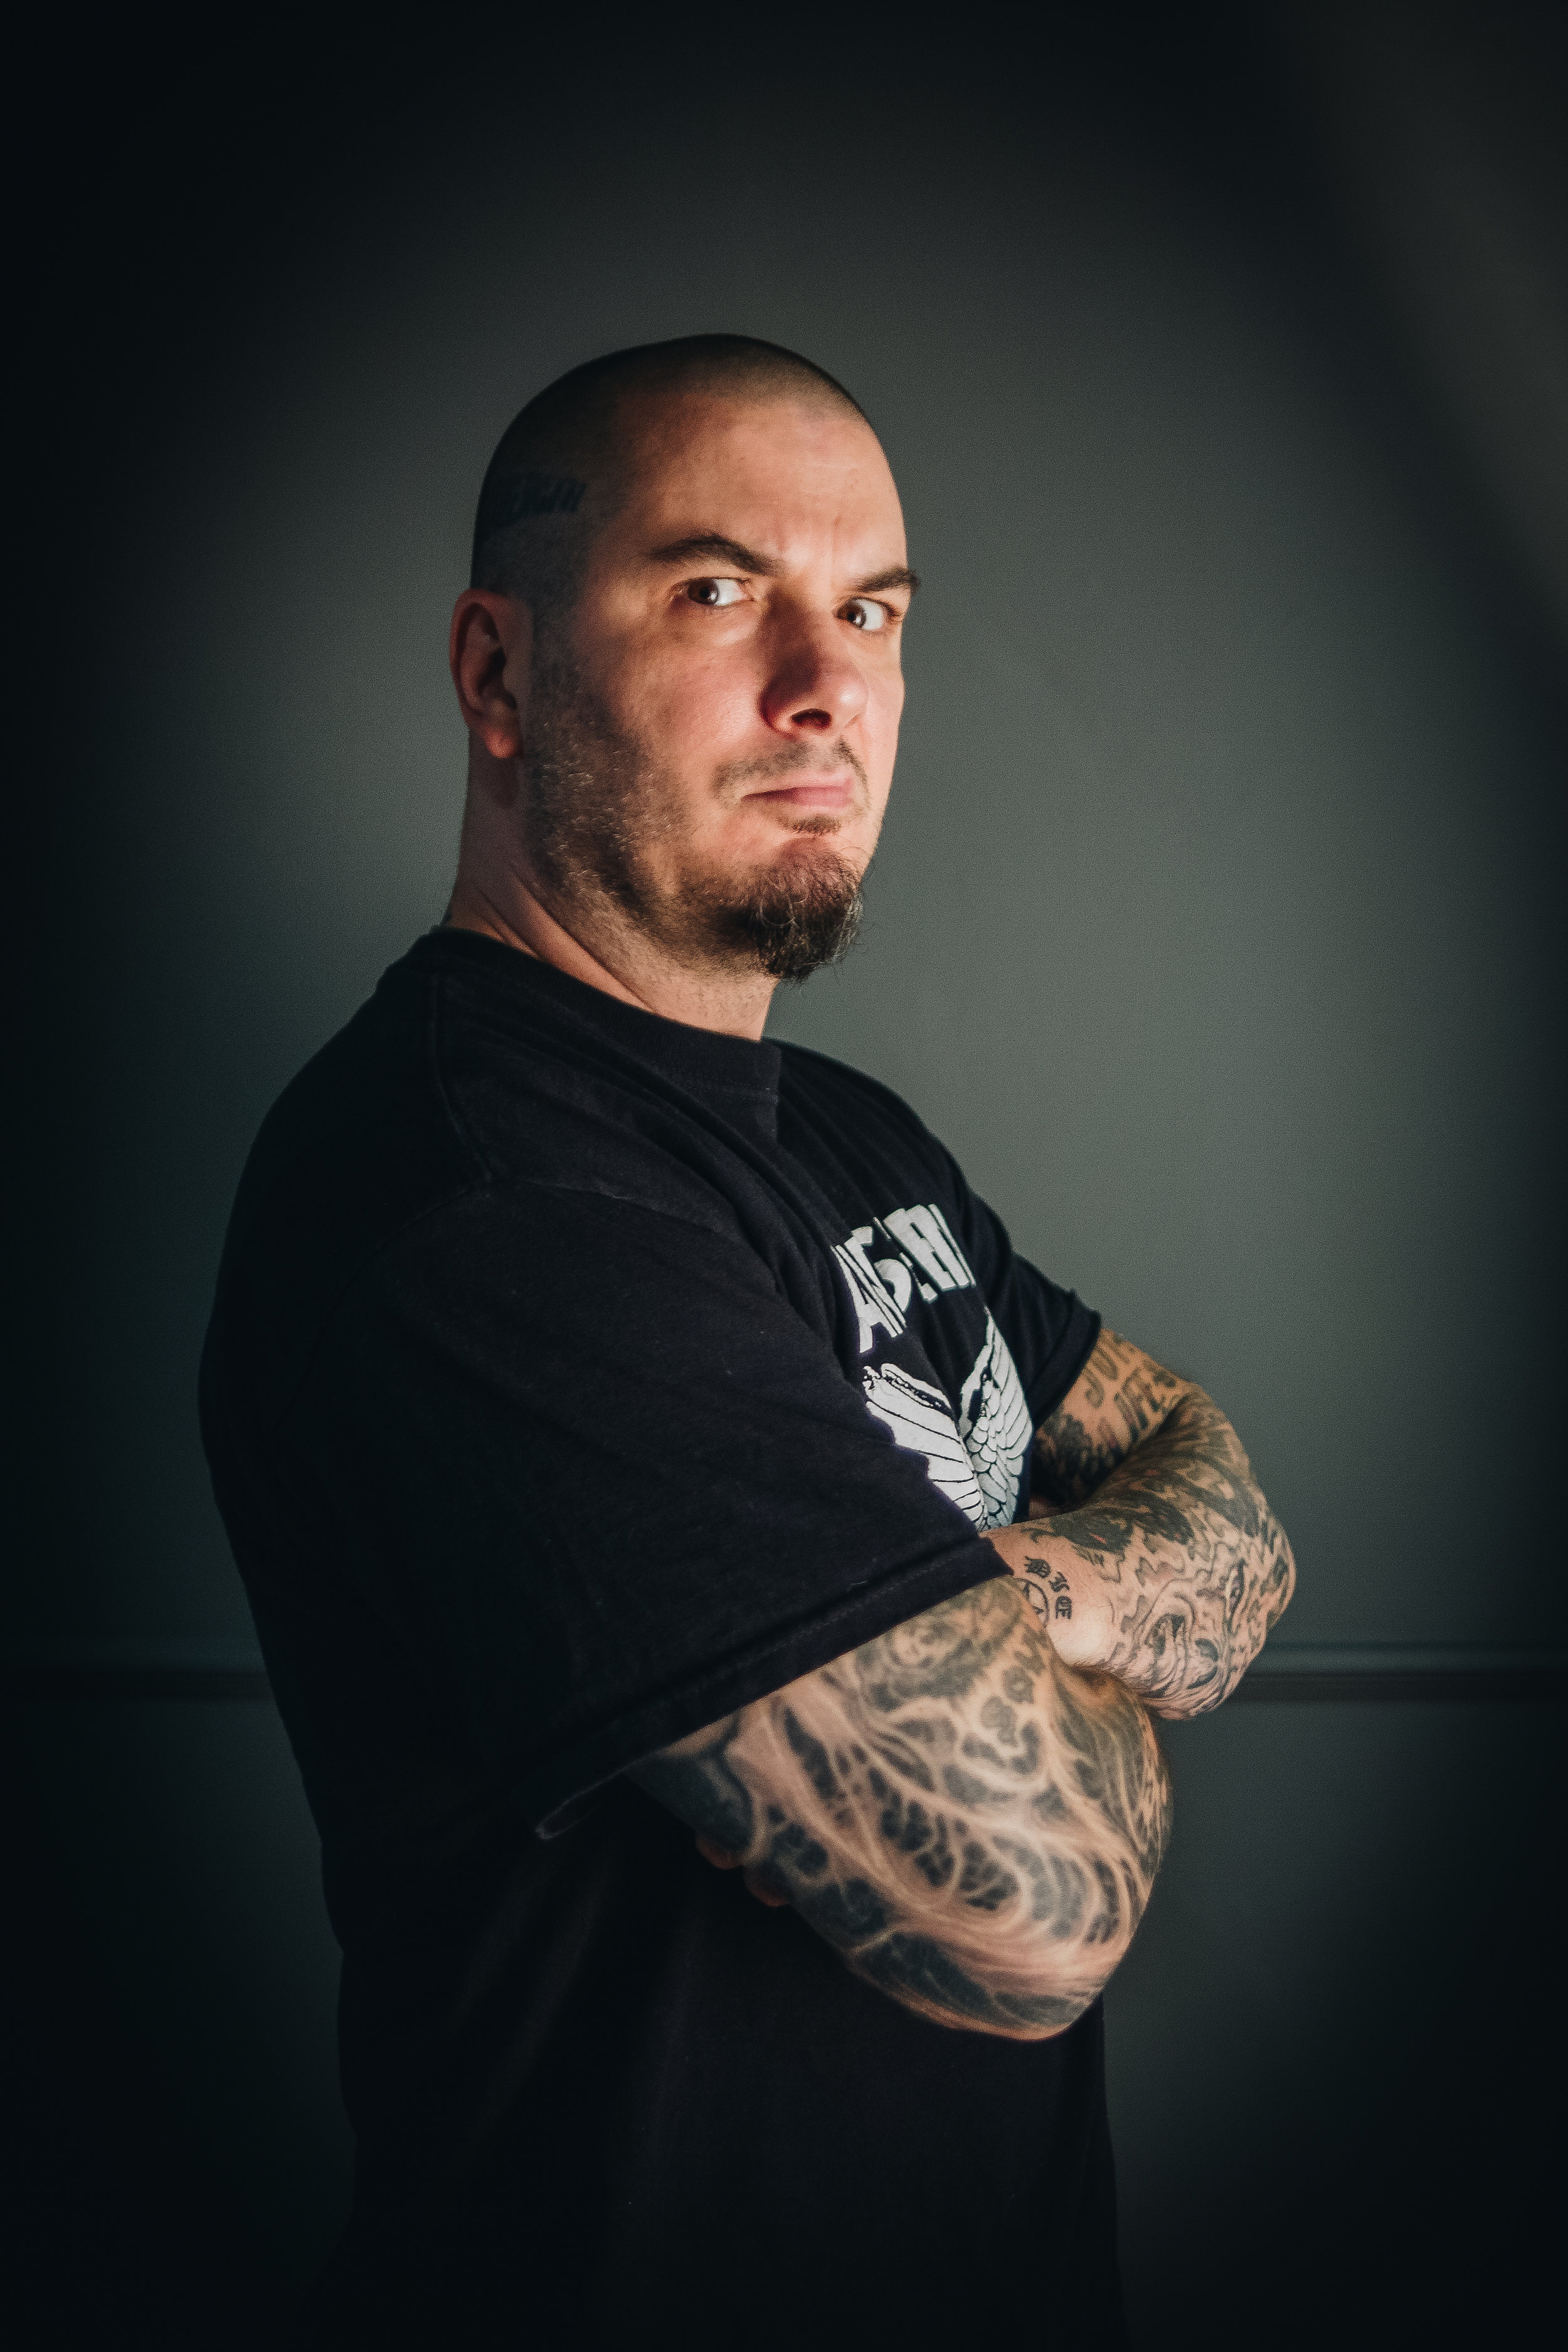 Phil Anselmo - April 2013 - Estevam Romera - IMG_5608.jpg